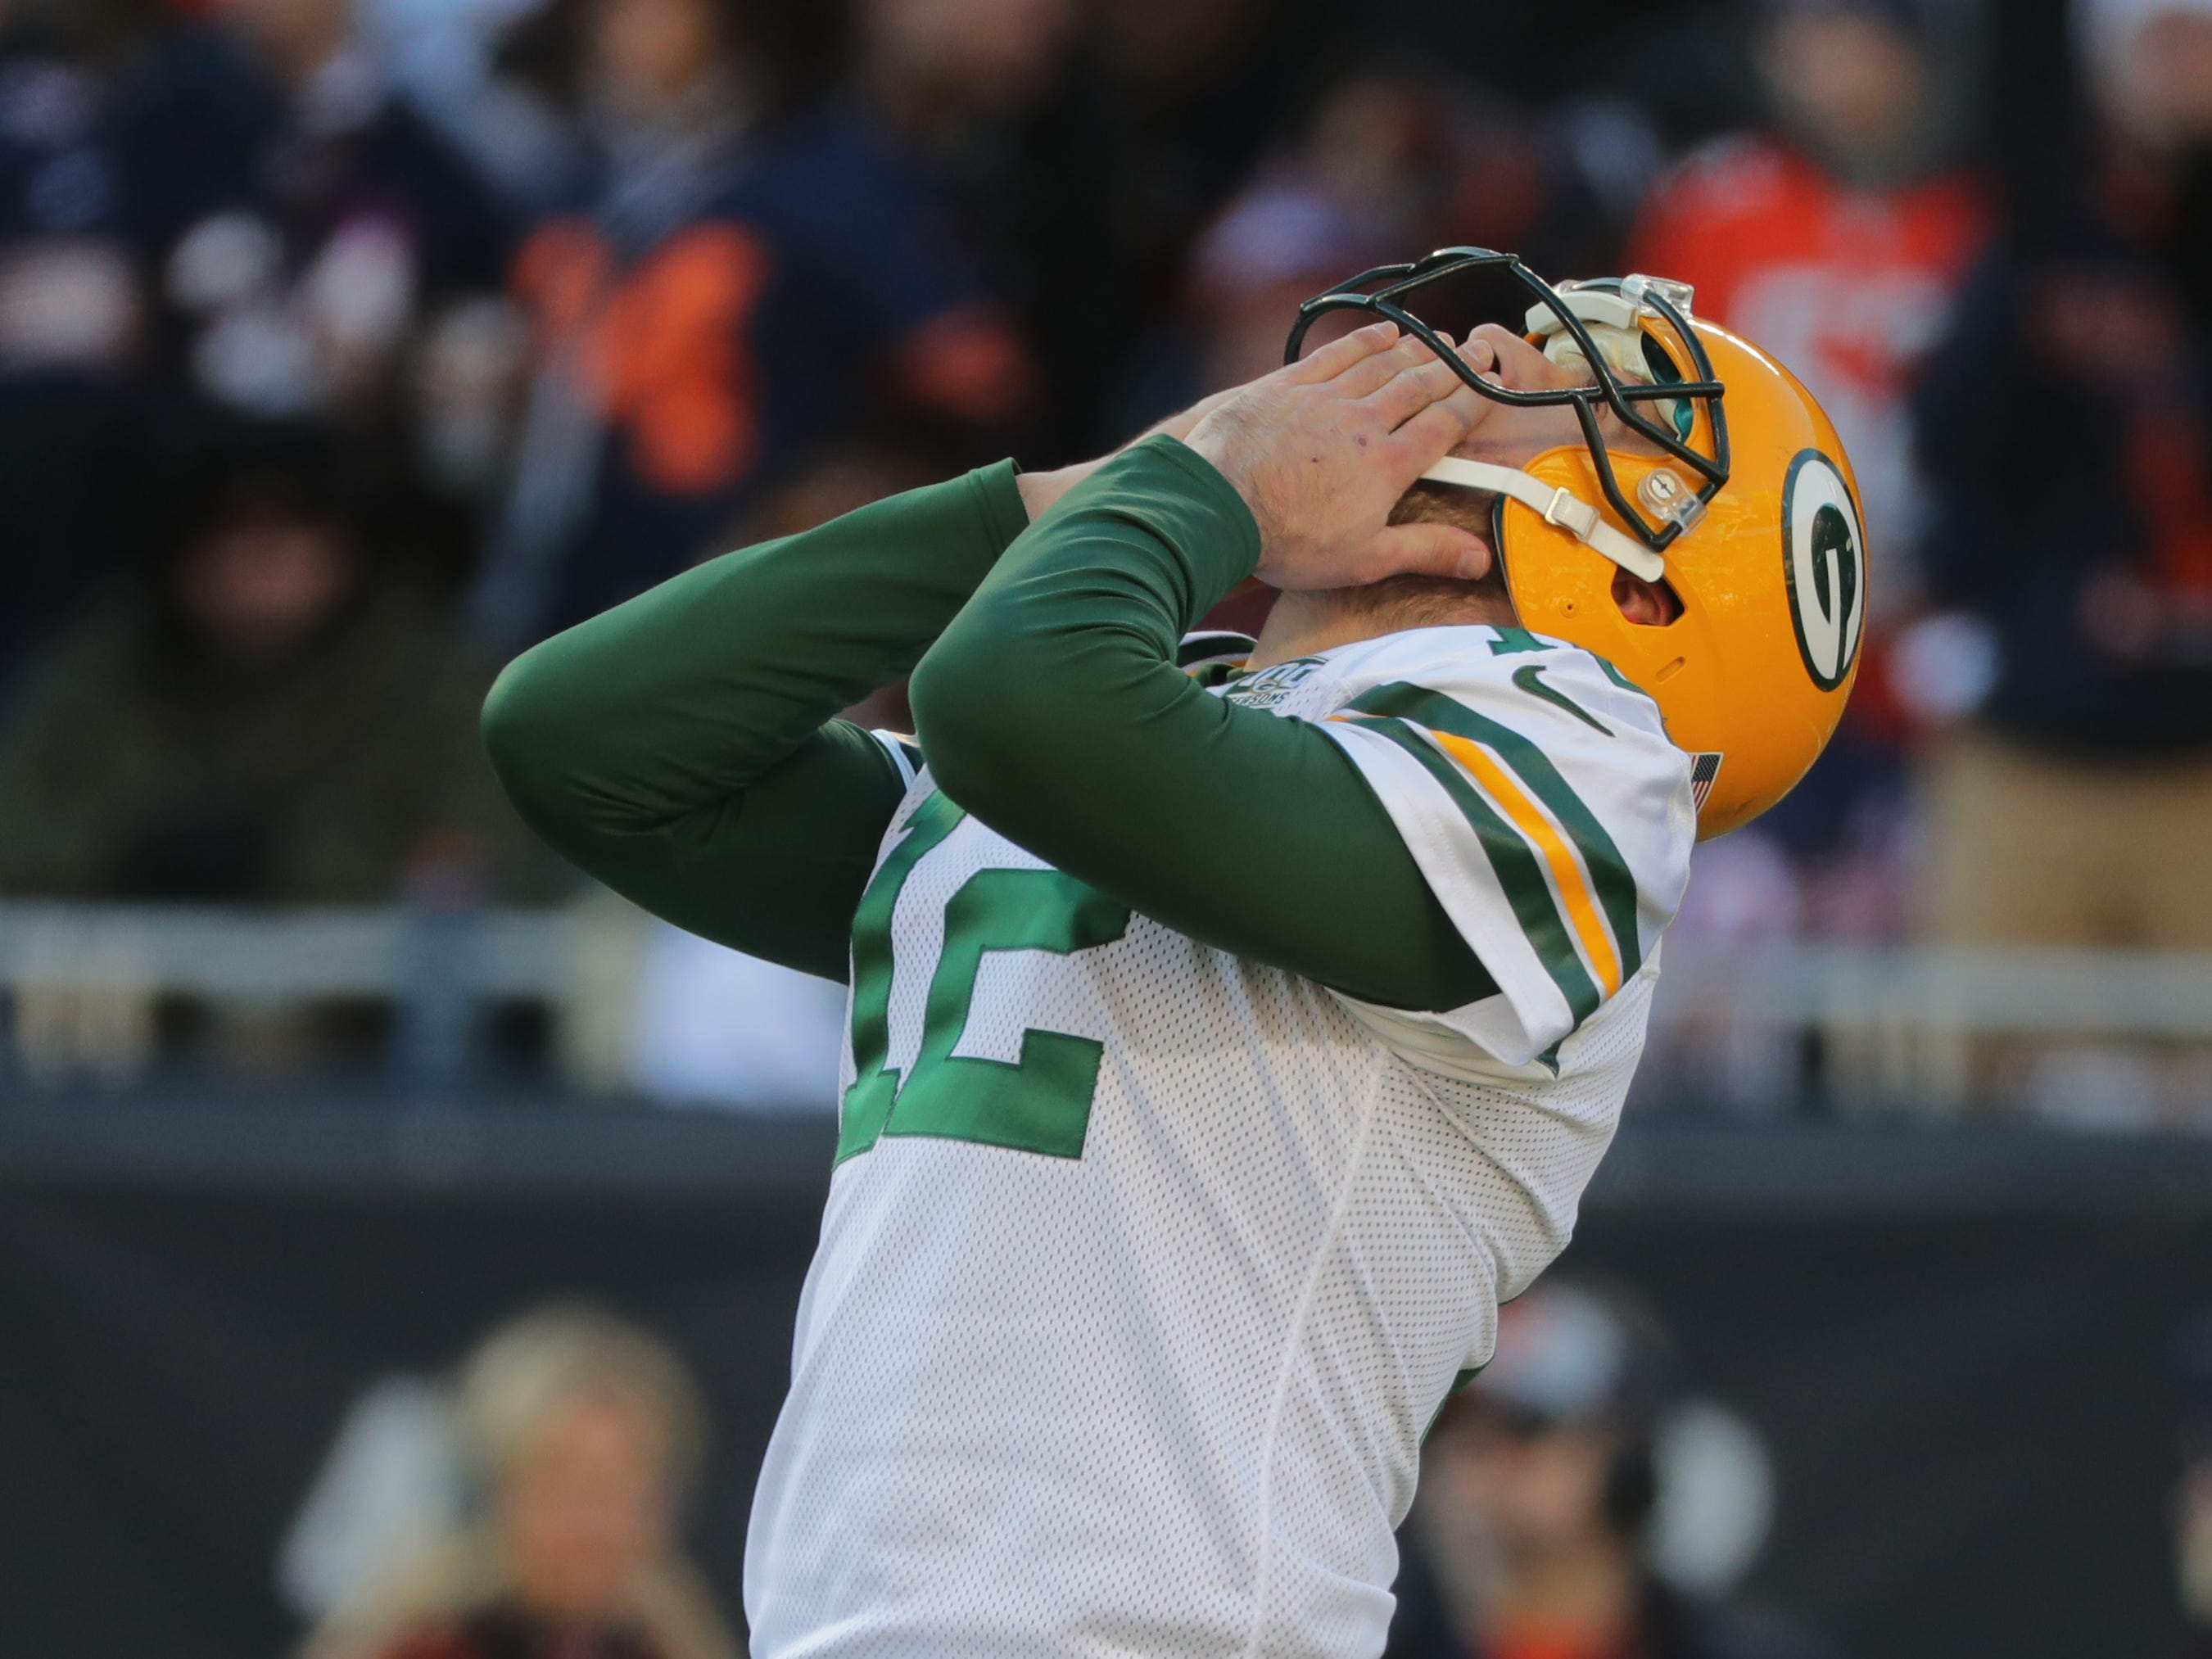 ALTENATE CROP -- TIGHTER IS BETTER -- Green Bay Packers quarterback Aaron Rodgers (12) reacts after throwing an incomplete pass during the fourth quarter of their game against the Chicago Bears Sunday, December 25, 2018 at Soldier Field in Chicago, Ill. The Chicago Bears beat the Green Bay Packers 24-17.  MARK HOFFMAN/MILWAUKEE JOURNAL SENTINEL